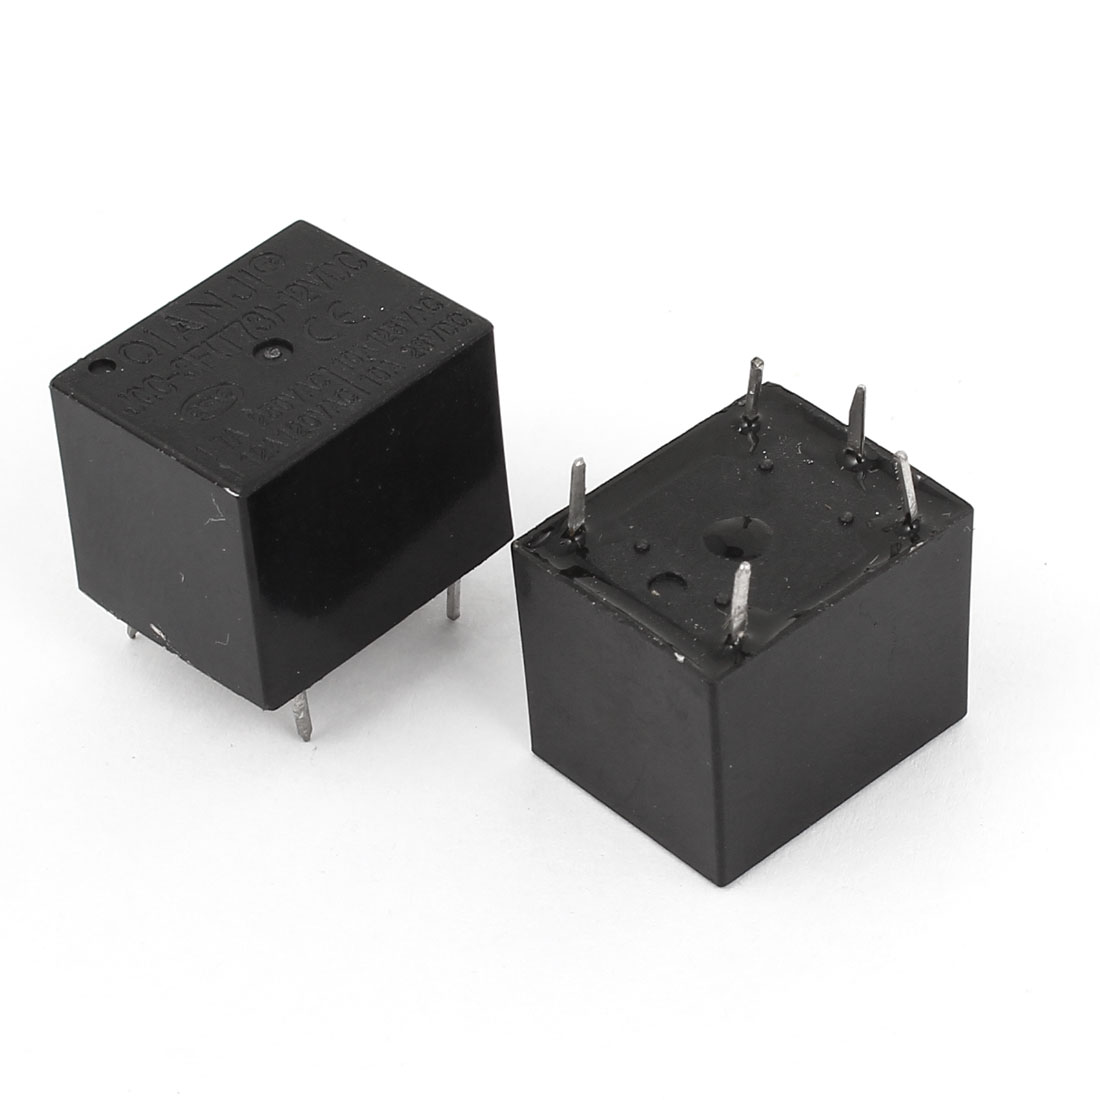 PBC Mount 5 Pins SPDT General Purpose Relay Black DC 12V Coil 2 Pcs